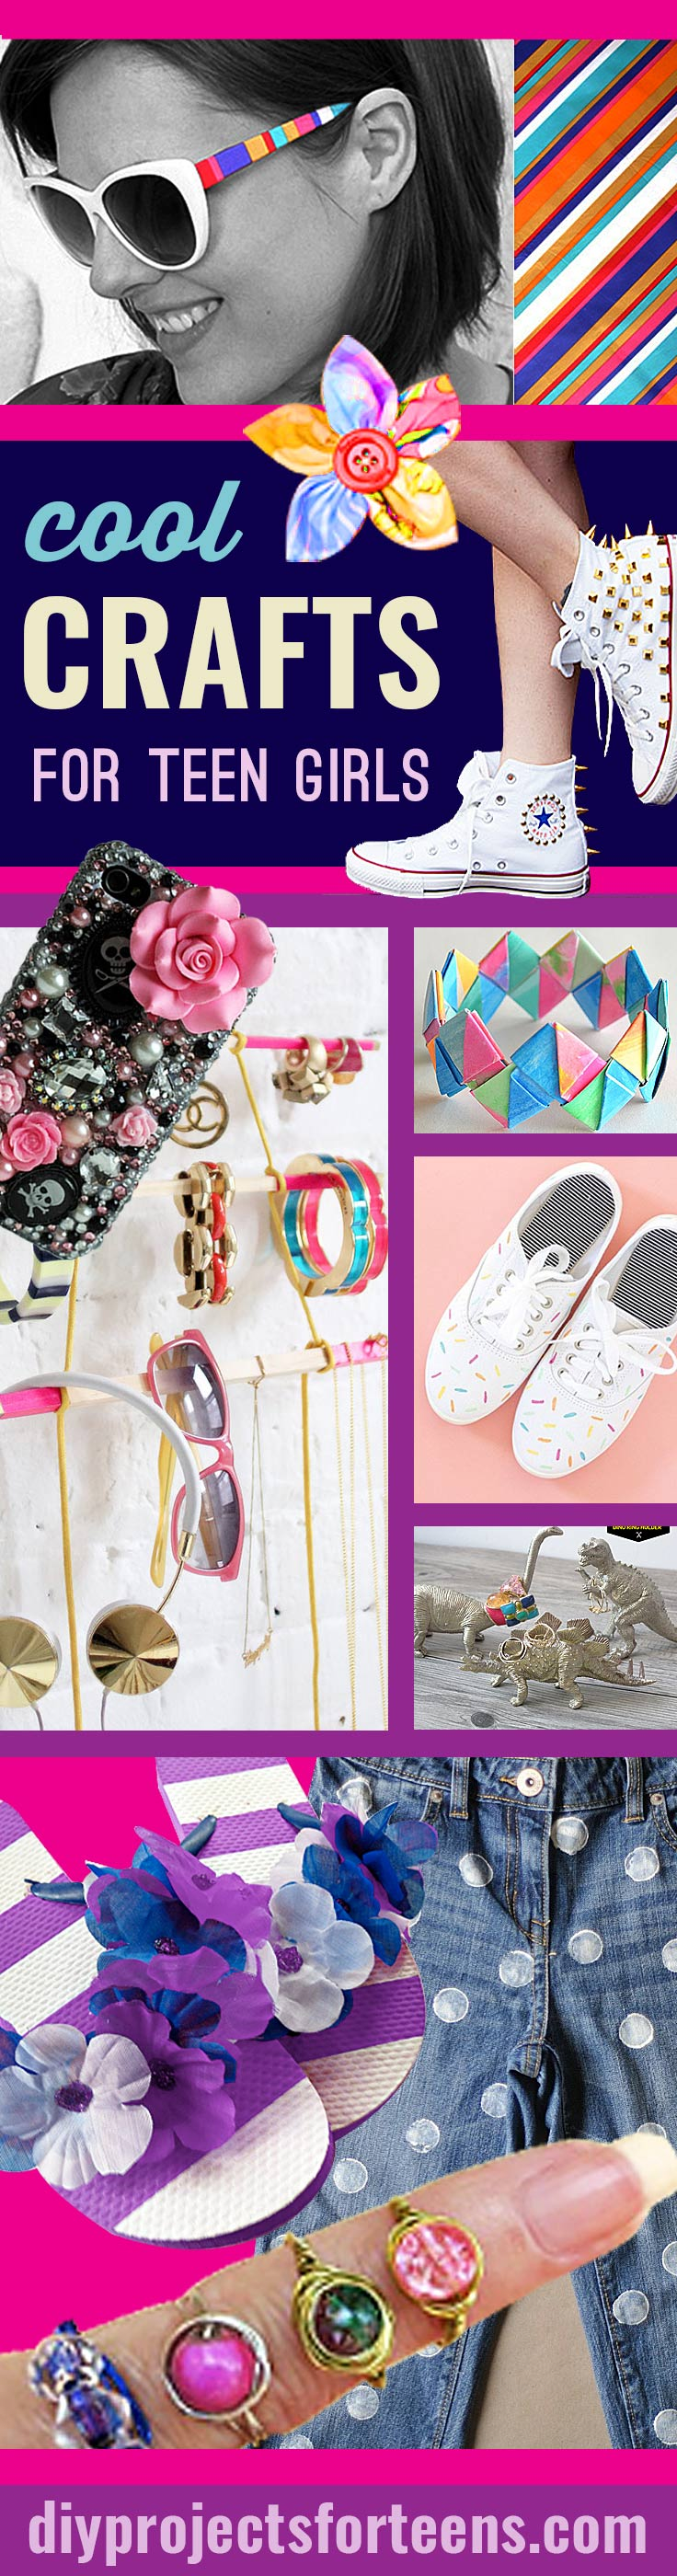 Cool Crafts for Teen Girls - DIY Projects for Teens